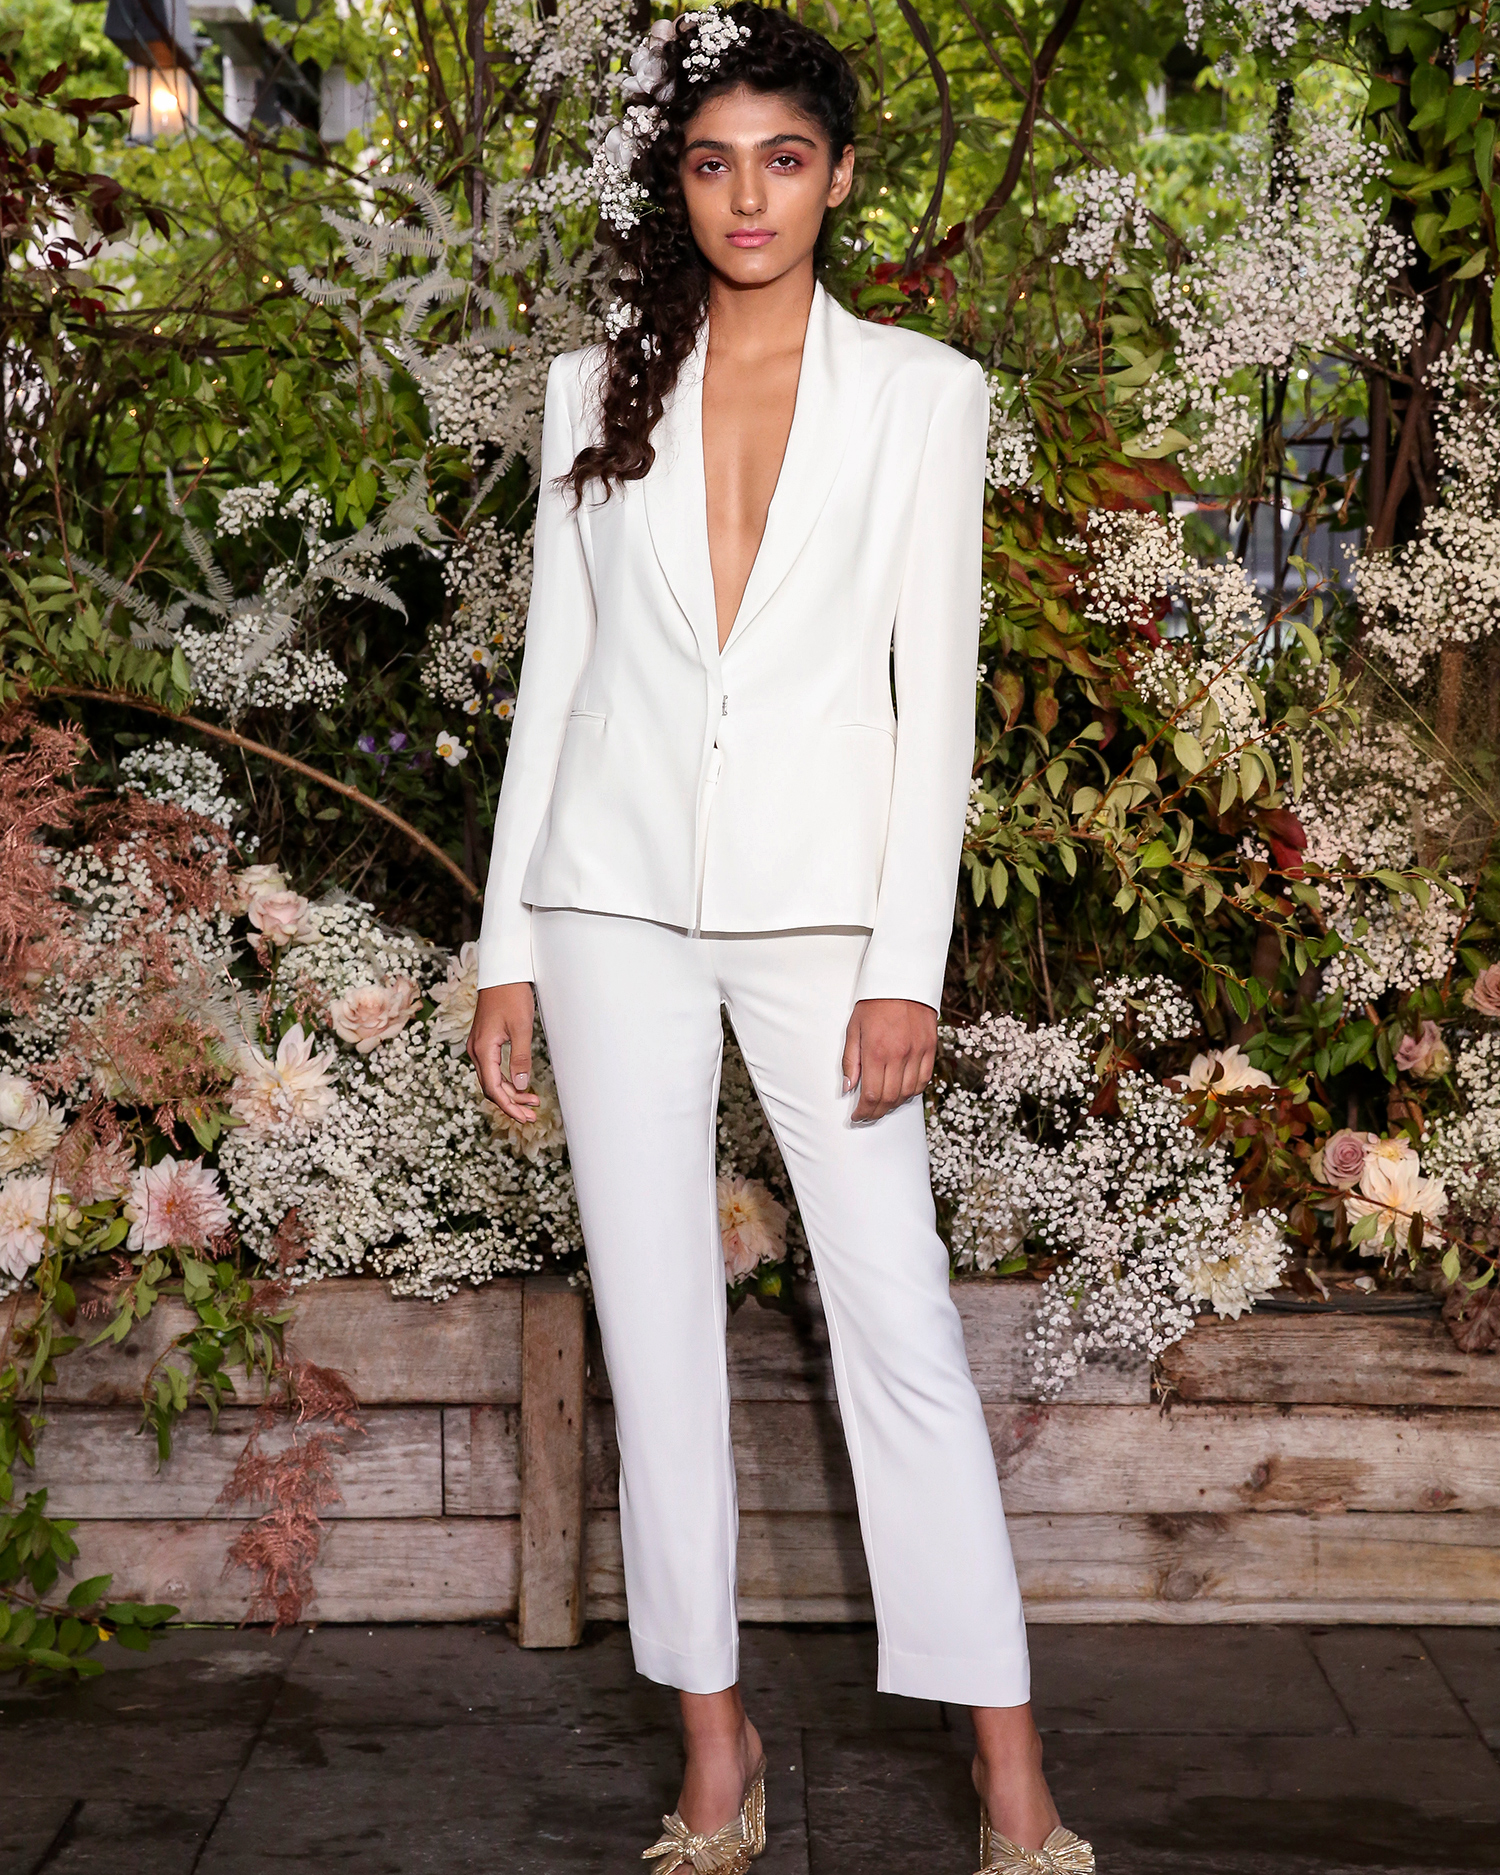 alexandra grecco wedding cropped pantsuit plunging neck